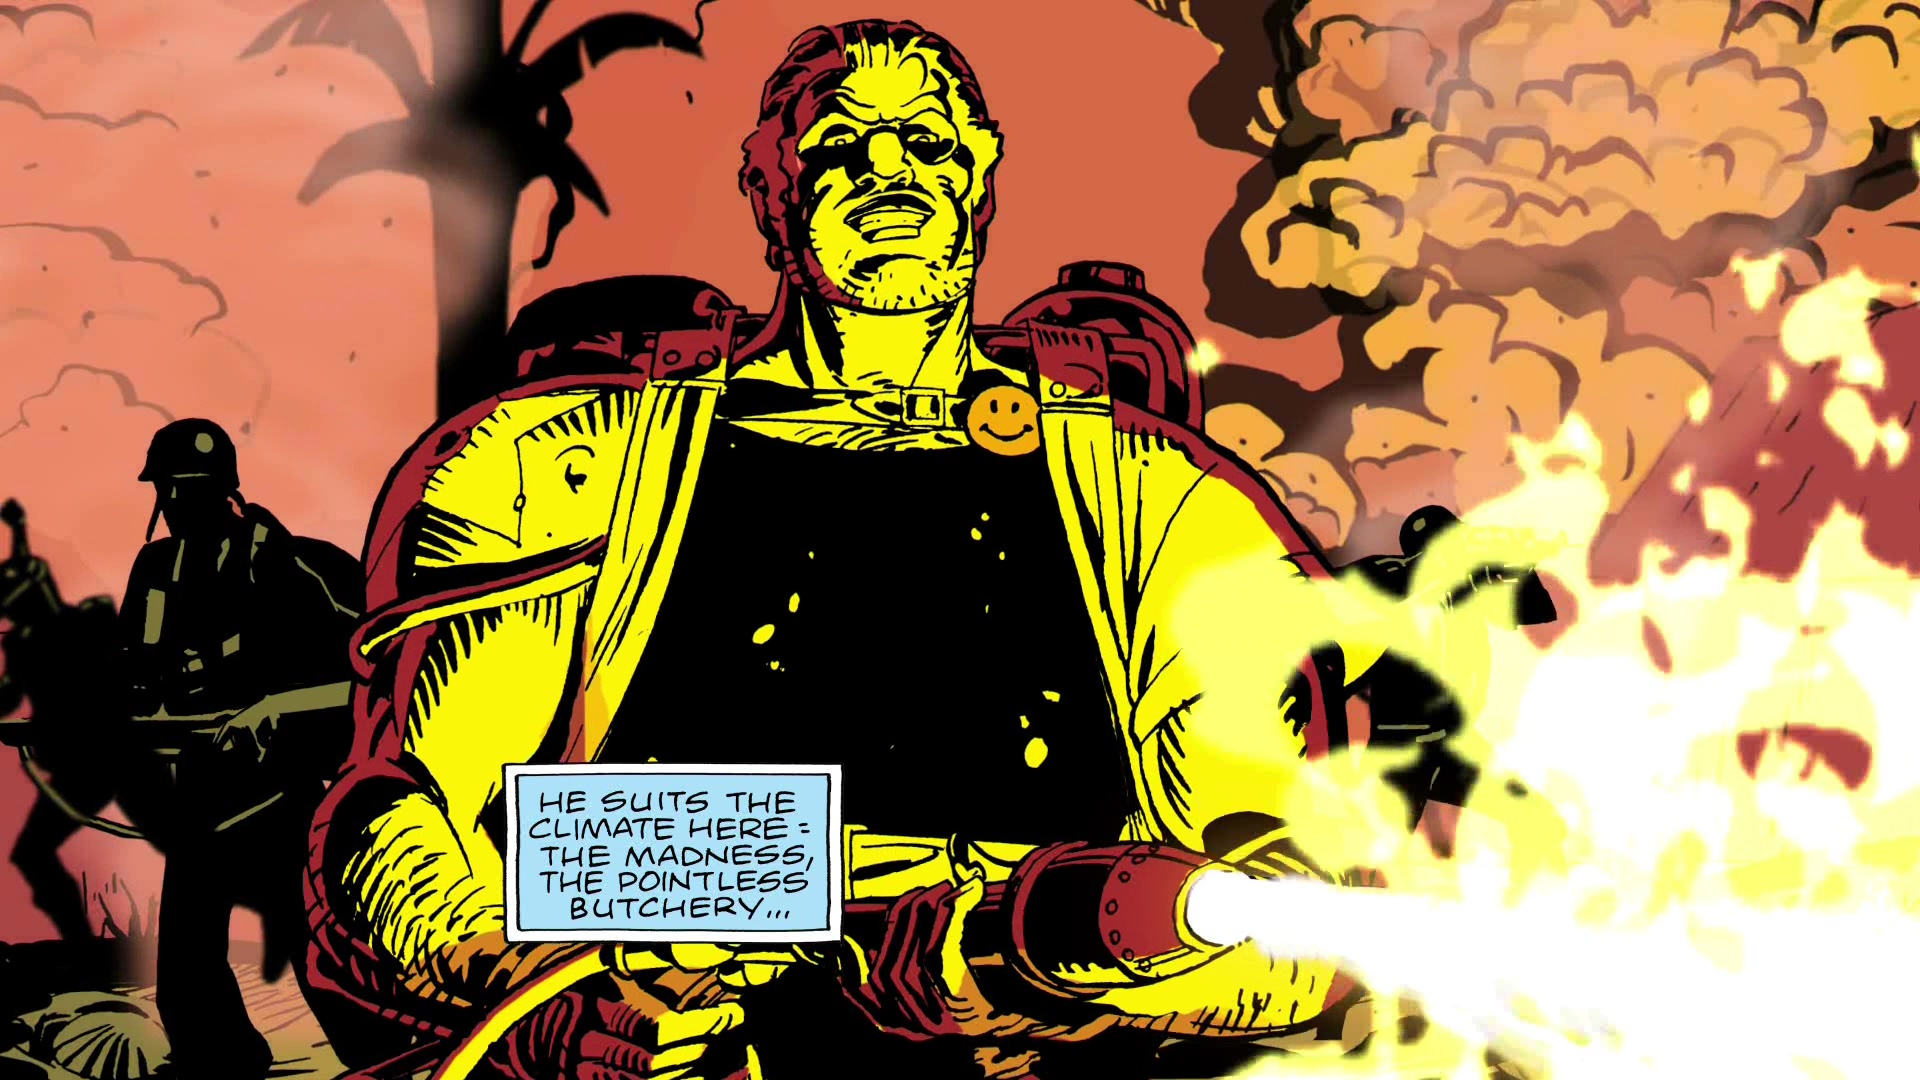 http://onlyhdwallpapers.com/thumbnail/watchmen_comics_flamethrower_the_comedian_desktop_1920x1080_wallpaper-276588.jpg